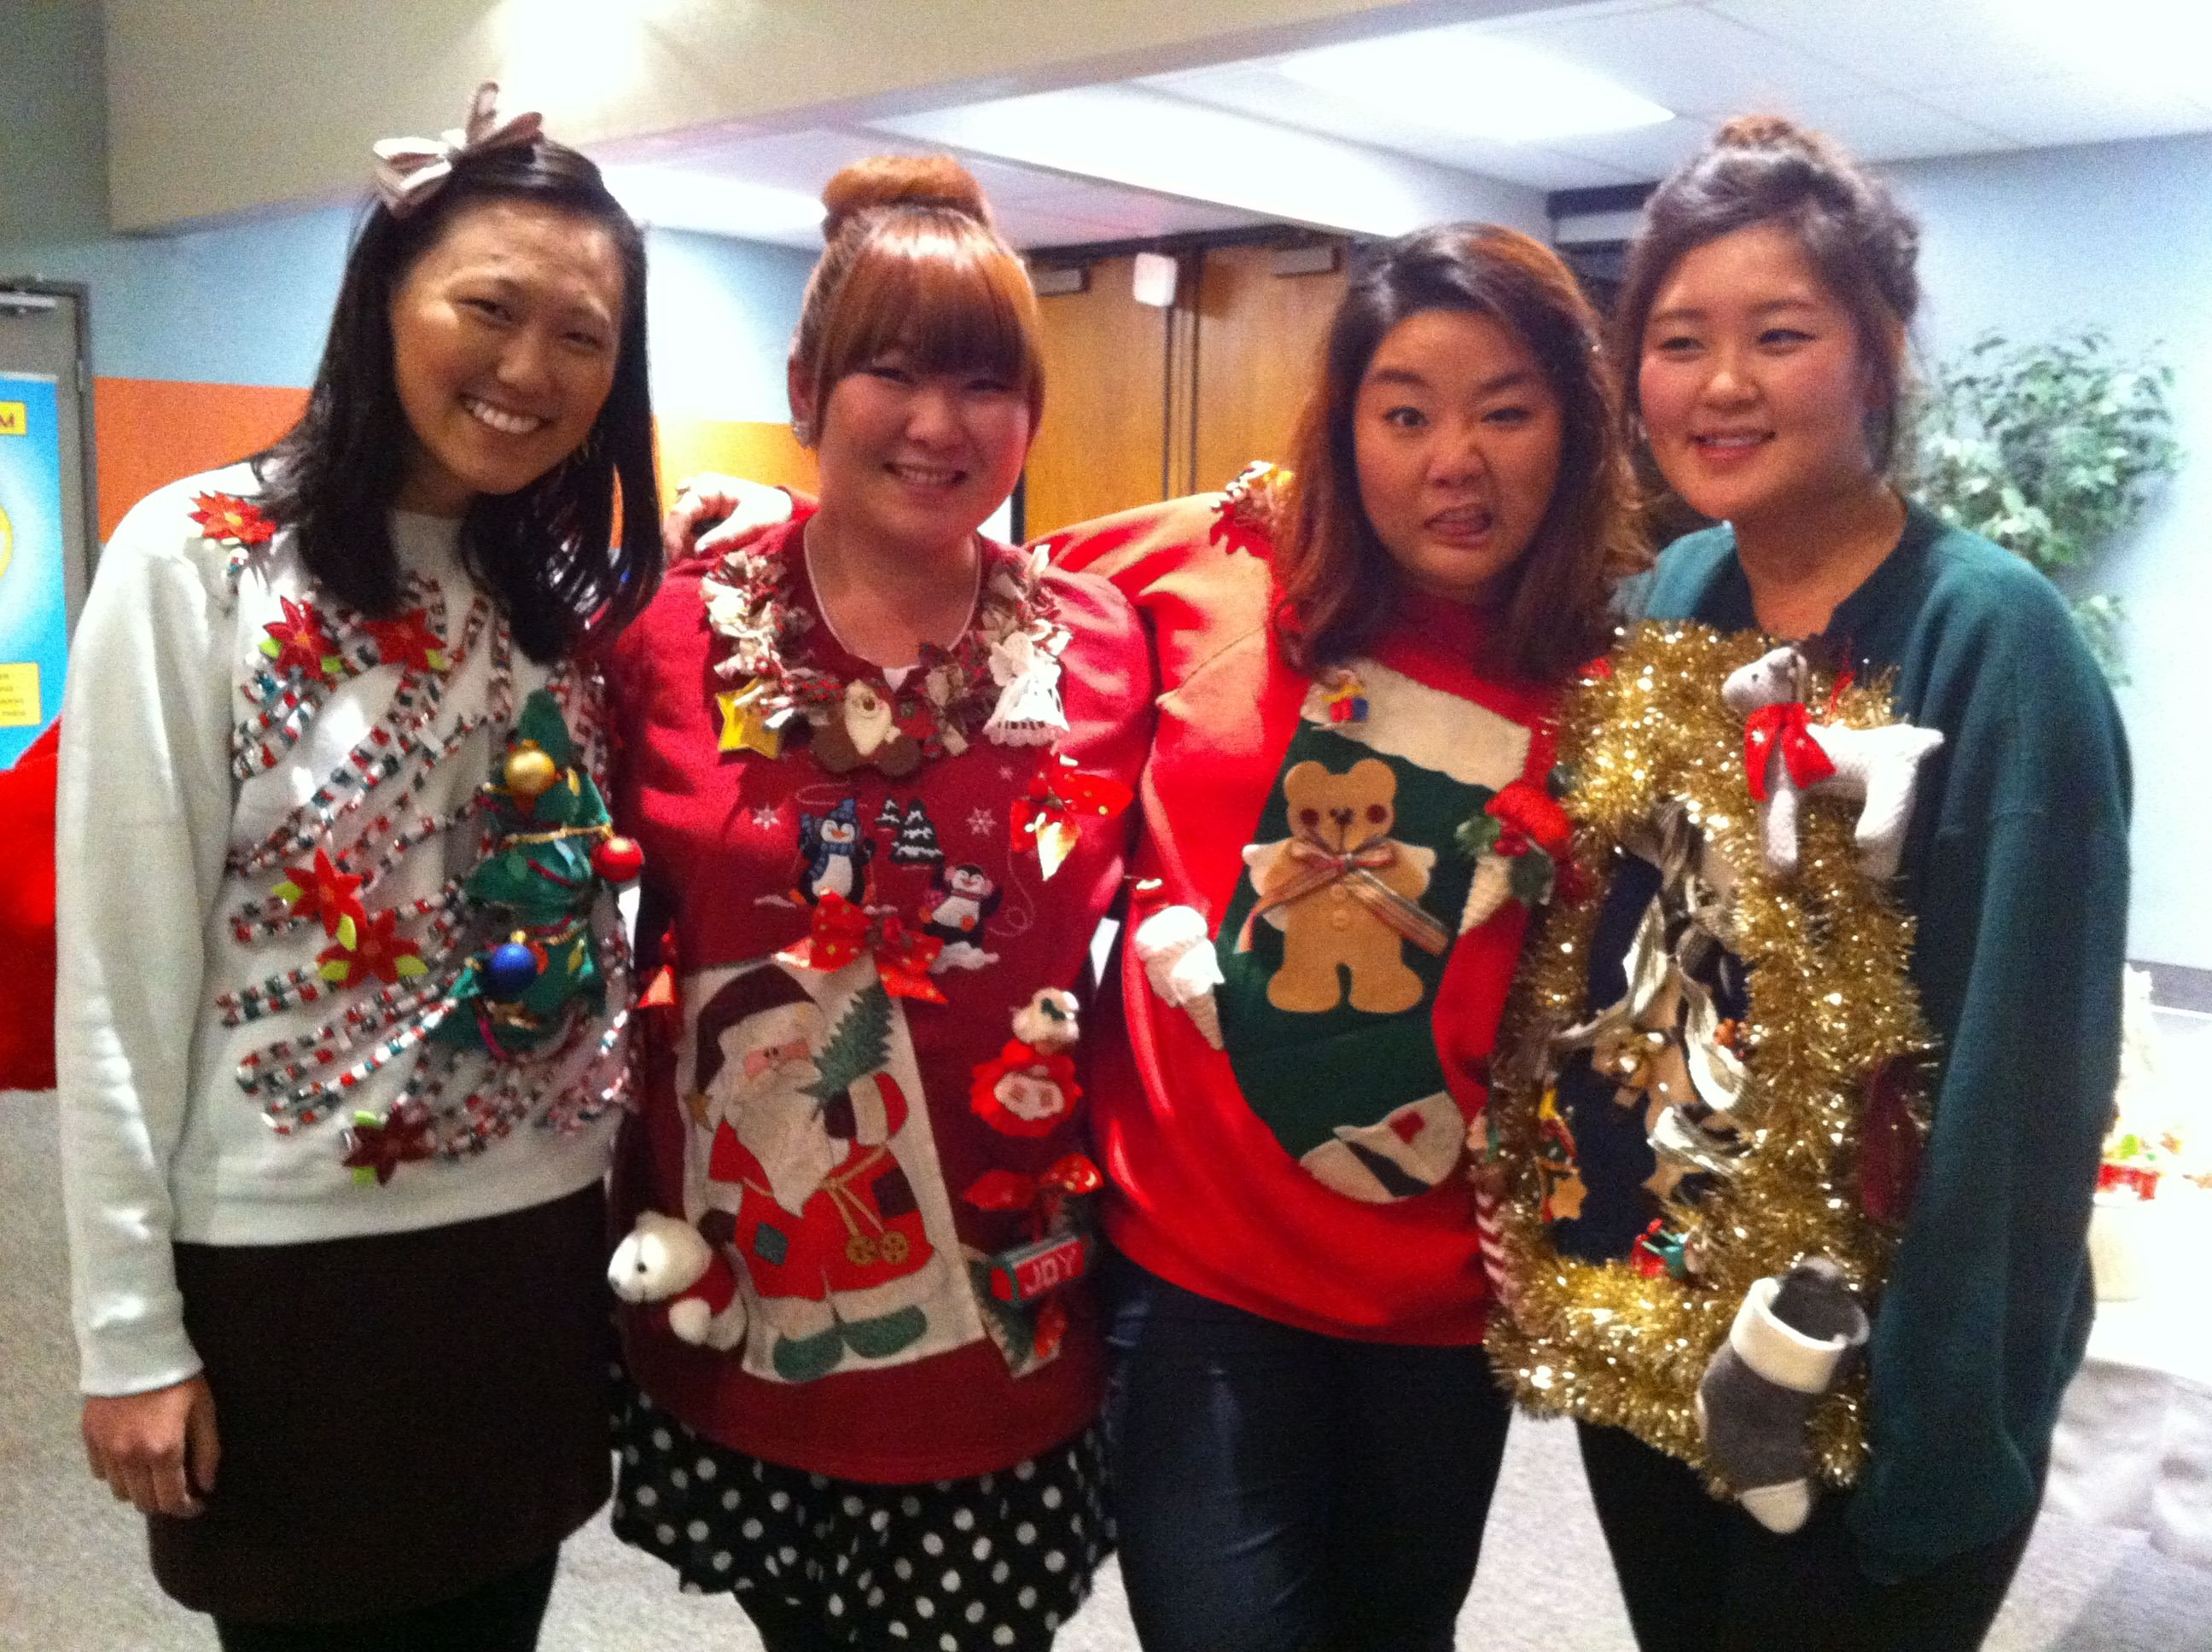 what to wear for ugly sweater party